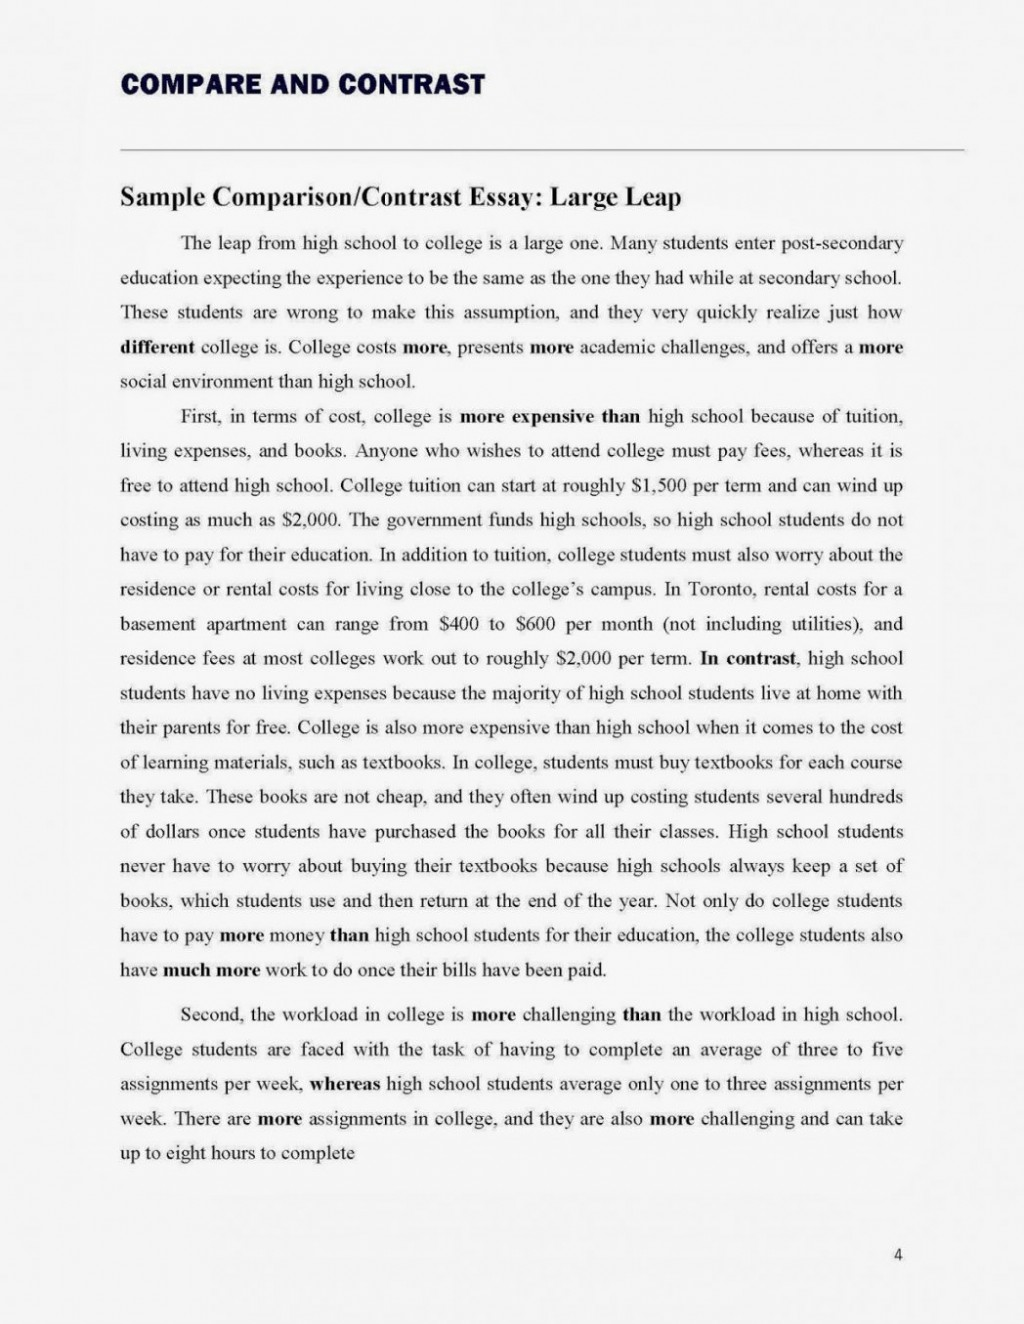 007 Word Essay The Giver Topics Ple Dns Phrases Totart Persu Ways Oftarting Persuasive How Conclusion Words With Quote Hooks Examplesentences For Introduction 1048x1356 Example Formidable To Start A Compare And Contrast Write Examples Comparison Thesis Middle School Large